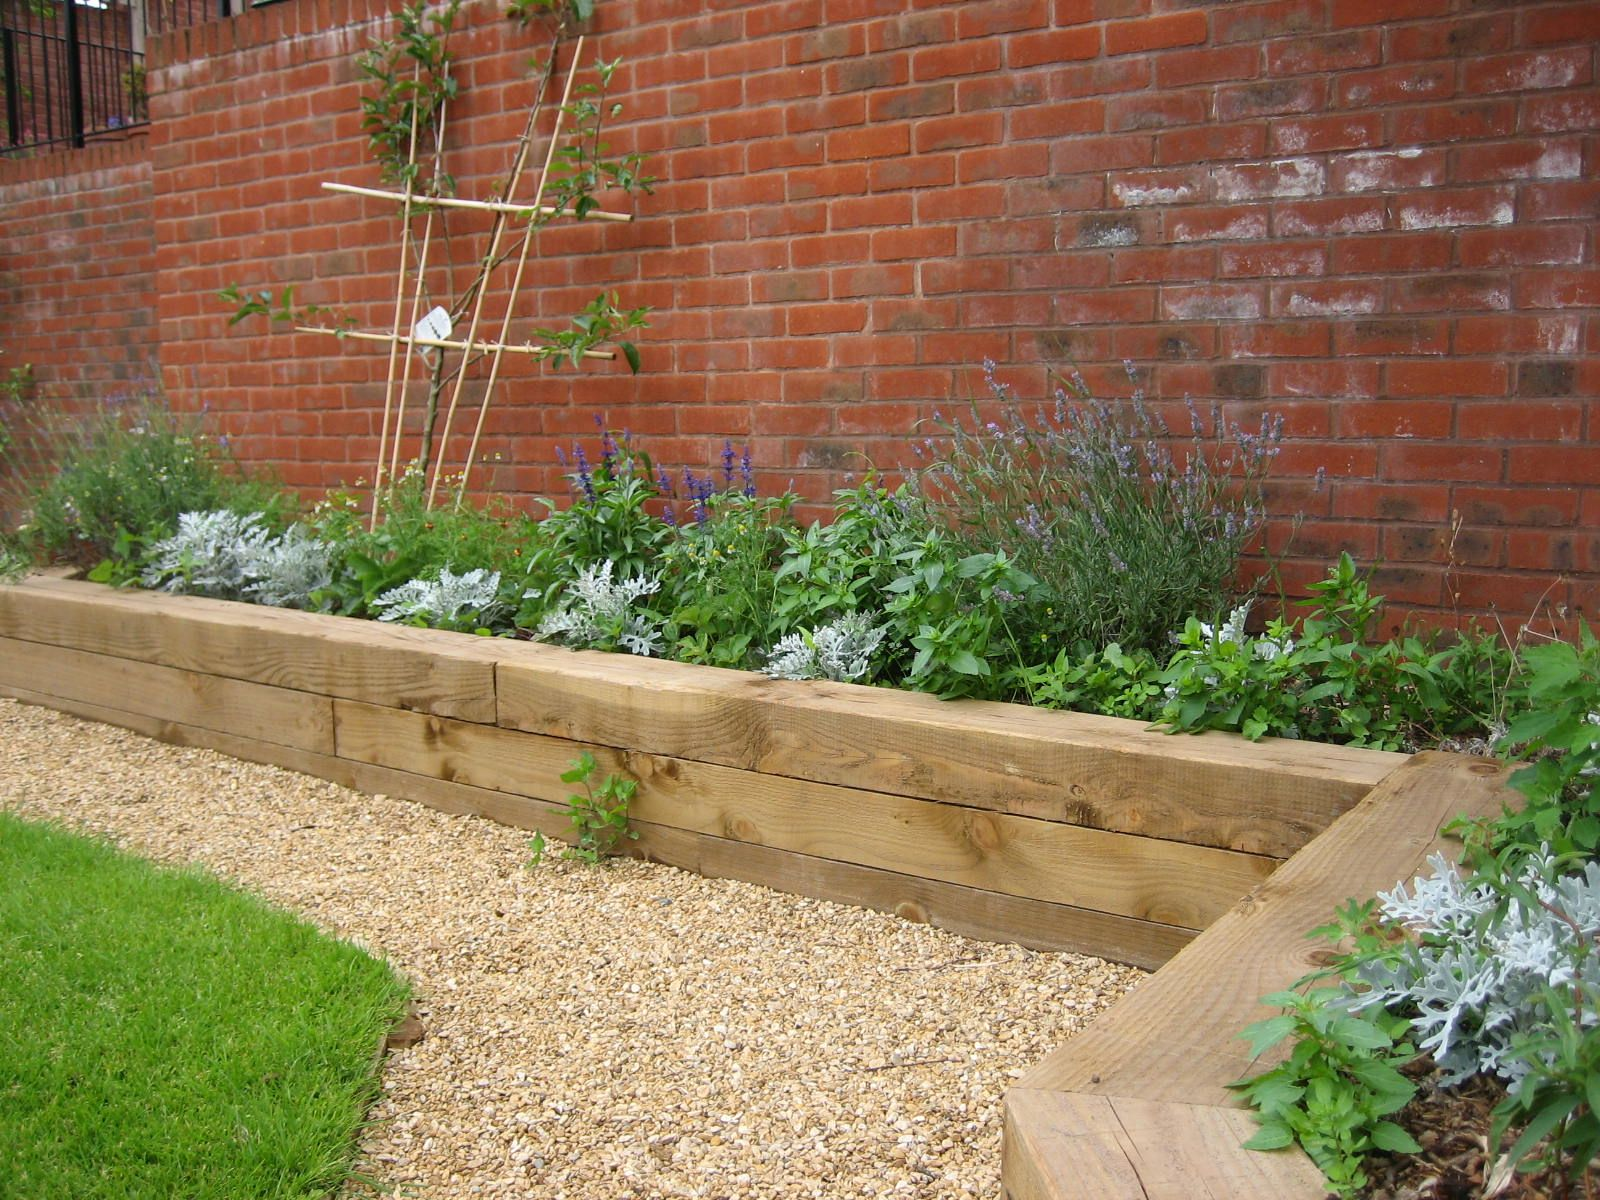 Raised beds railways sleepers gravel path brick wall for Garden designs sleepers